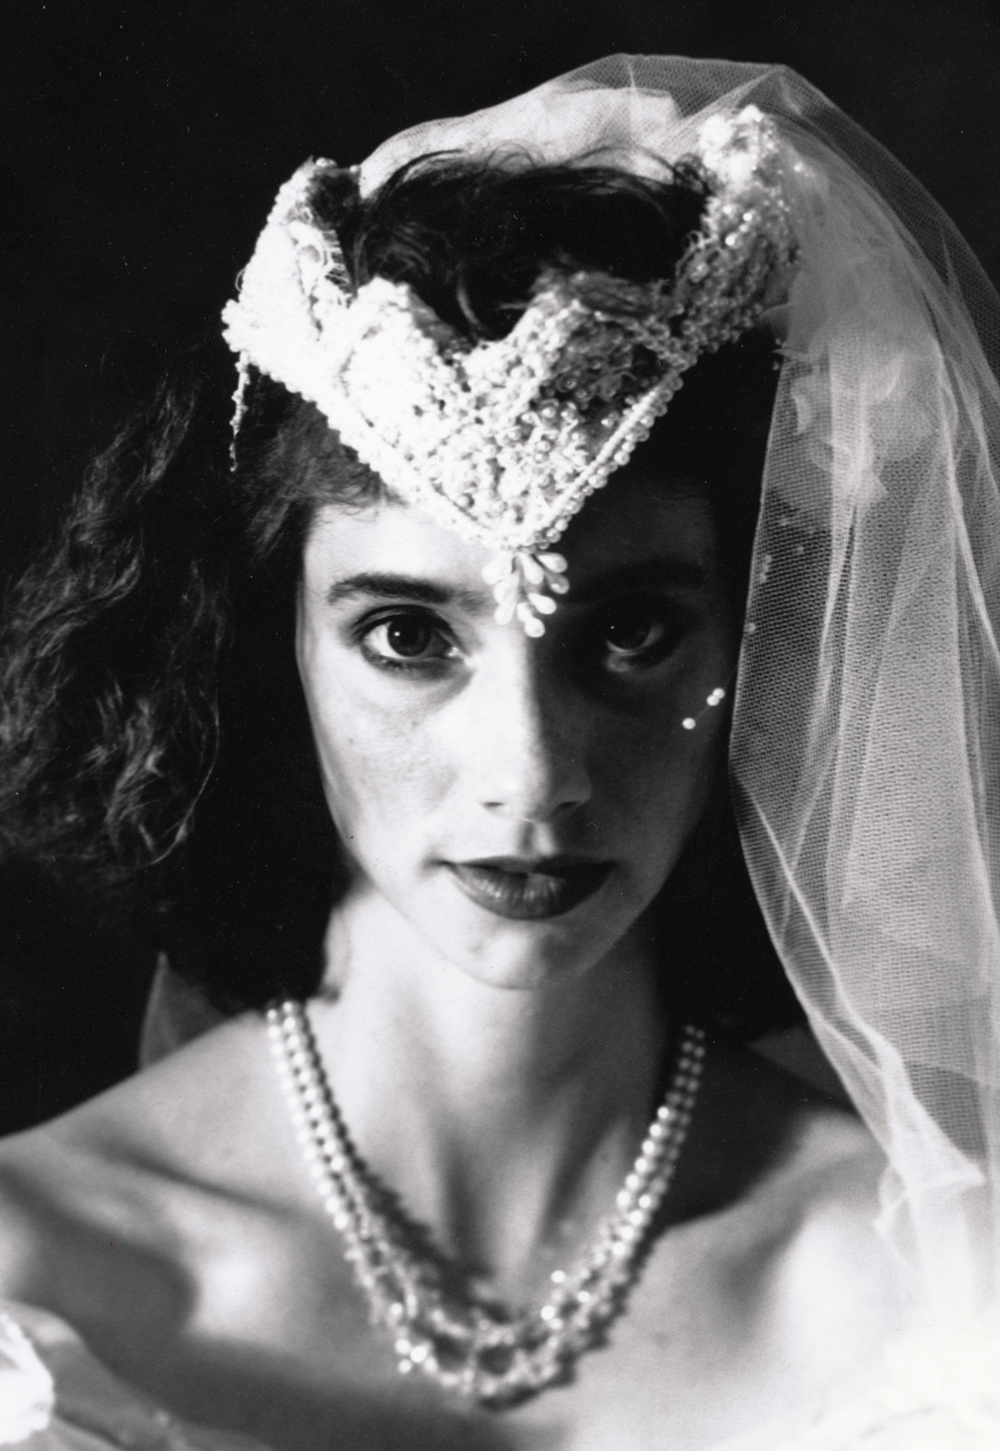 Teresa Wedding Series  (detail)   4x5 silver print.  © Jud Burgess  1989